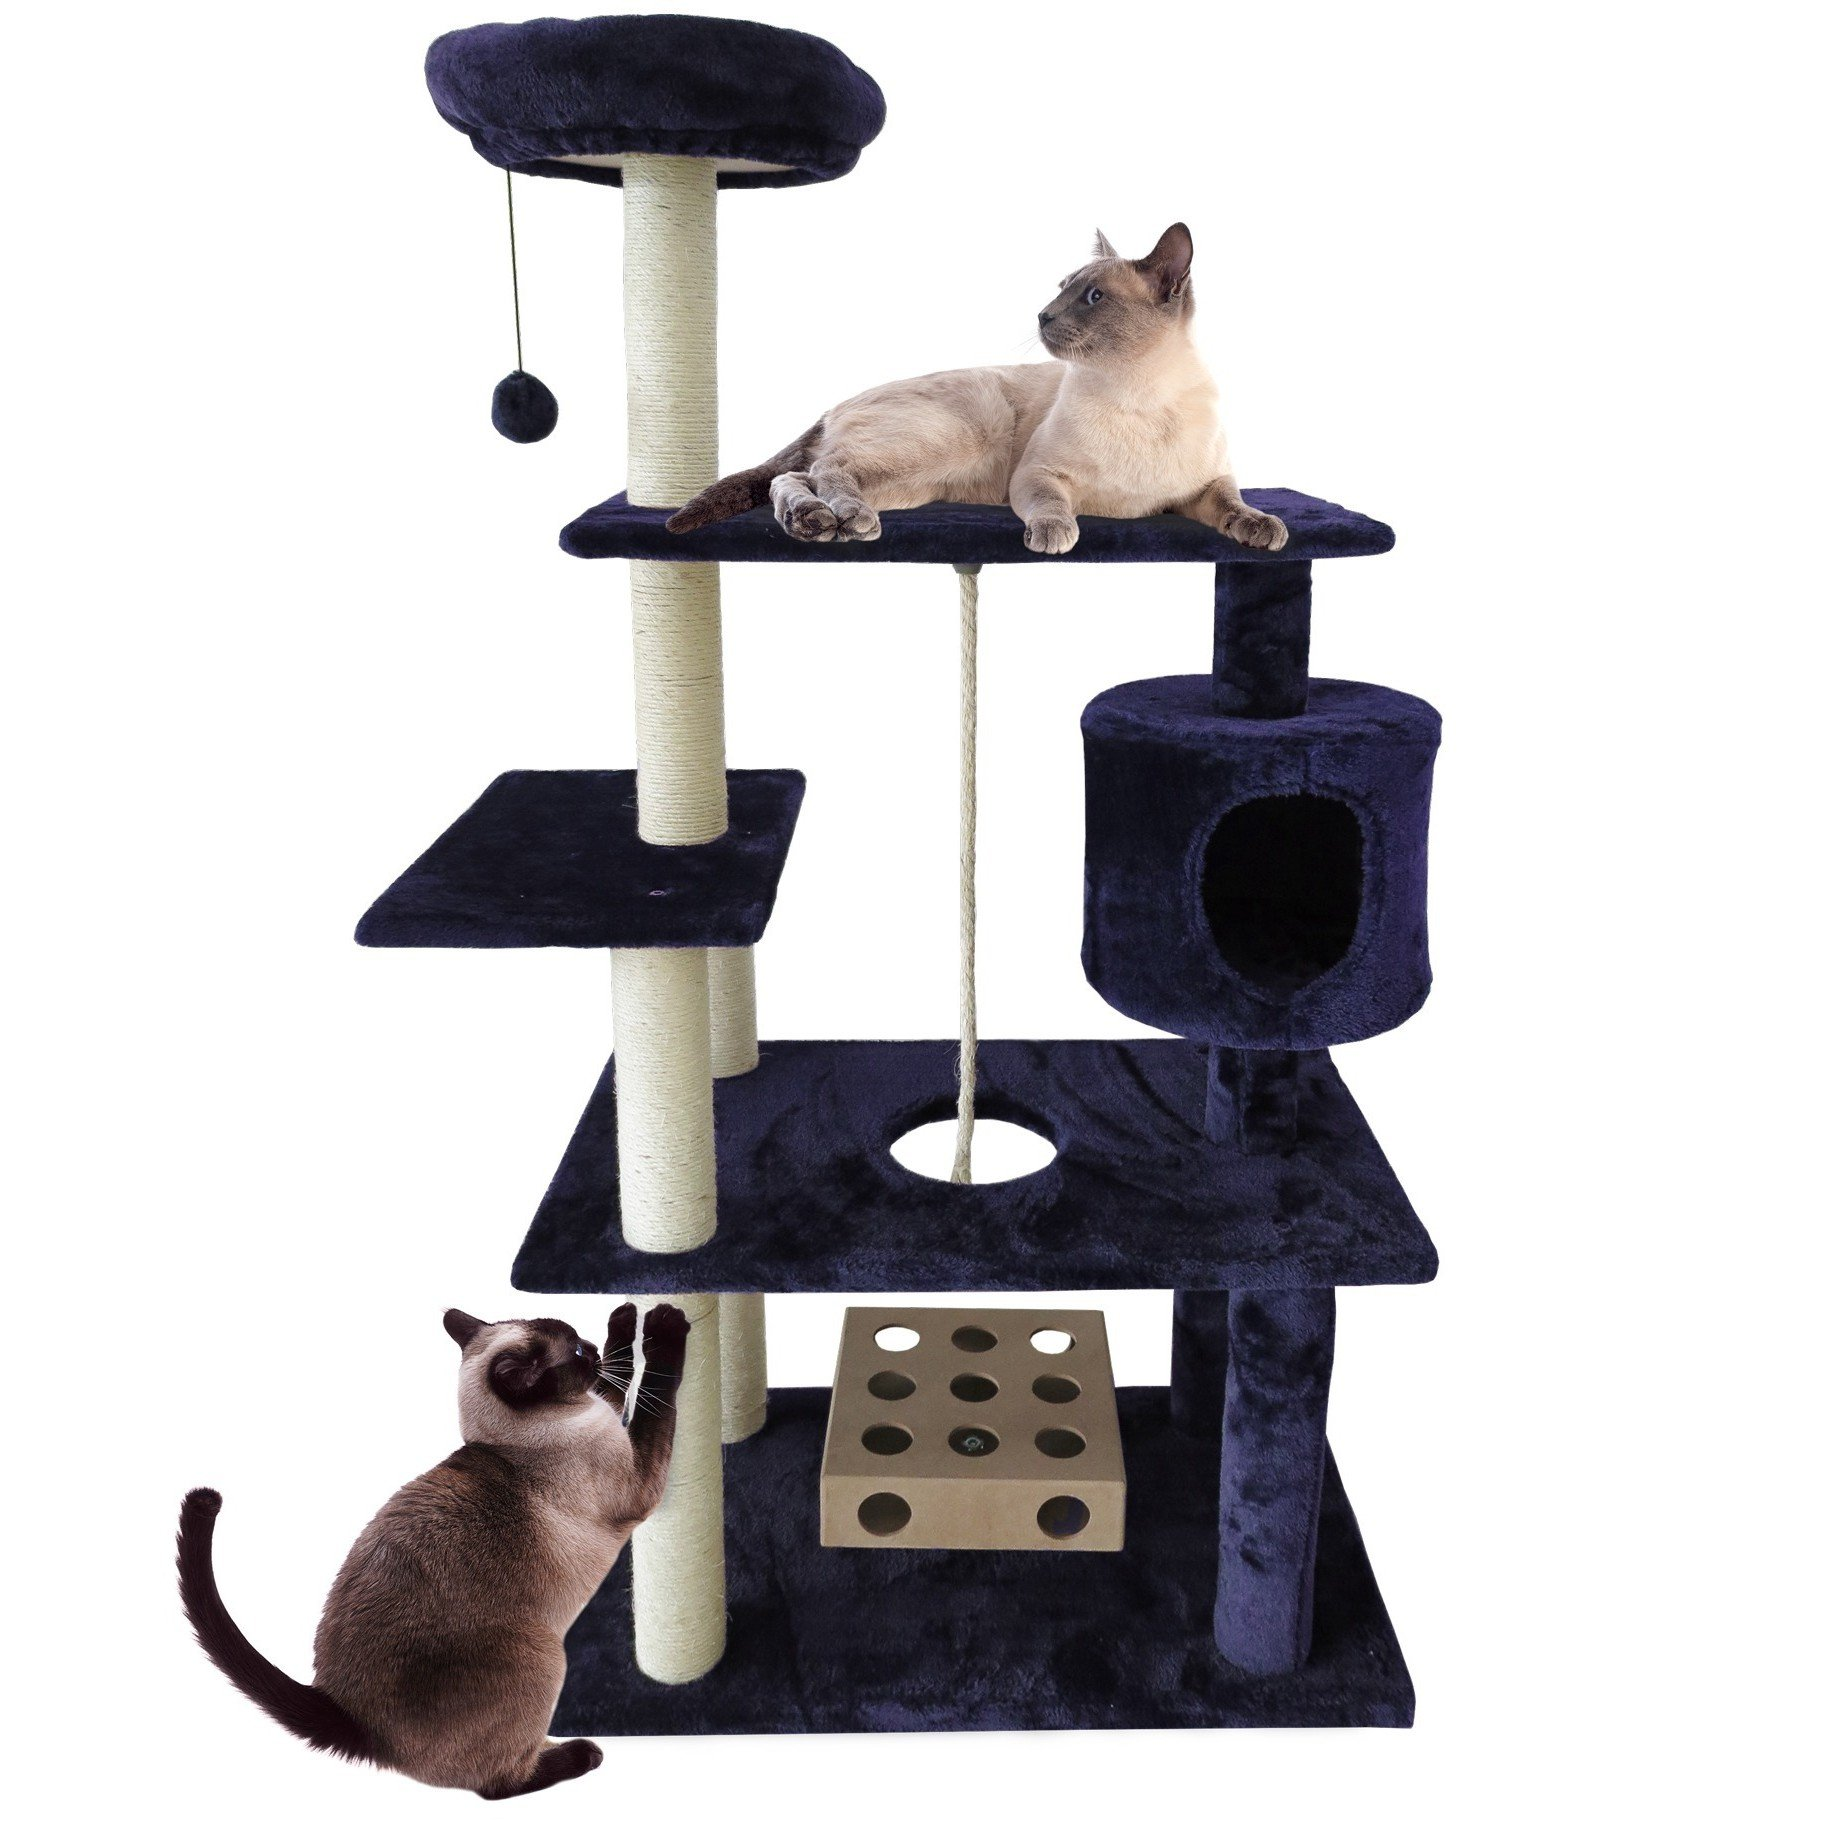 1 Piece Navy Blue 55 High Comfort Scratcher Cat Condo, Blue Color Pet Tree House Kitty Perch Cave Bed, Deluxe Playground Bungee Ball Iq Toy Elevated Safe Surface Fun Traditional, Sisal Rope